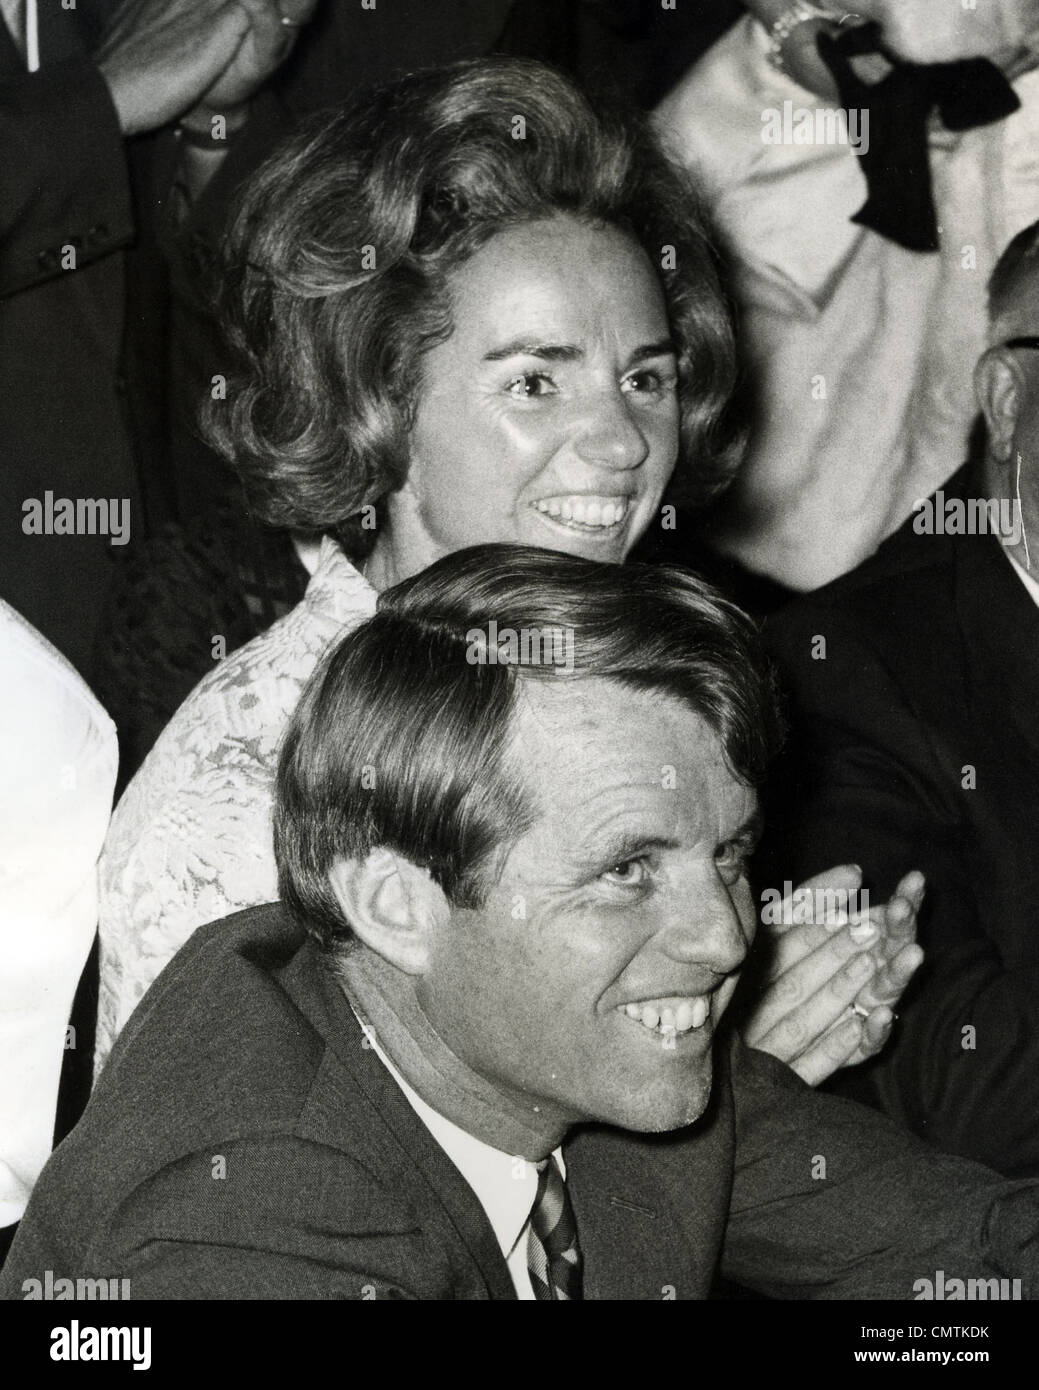 ROBERT 'Bobby' KENNEDY (1925-1968) US politician with his wife Ethel - Stock Image